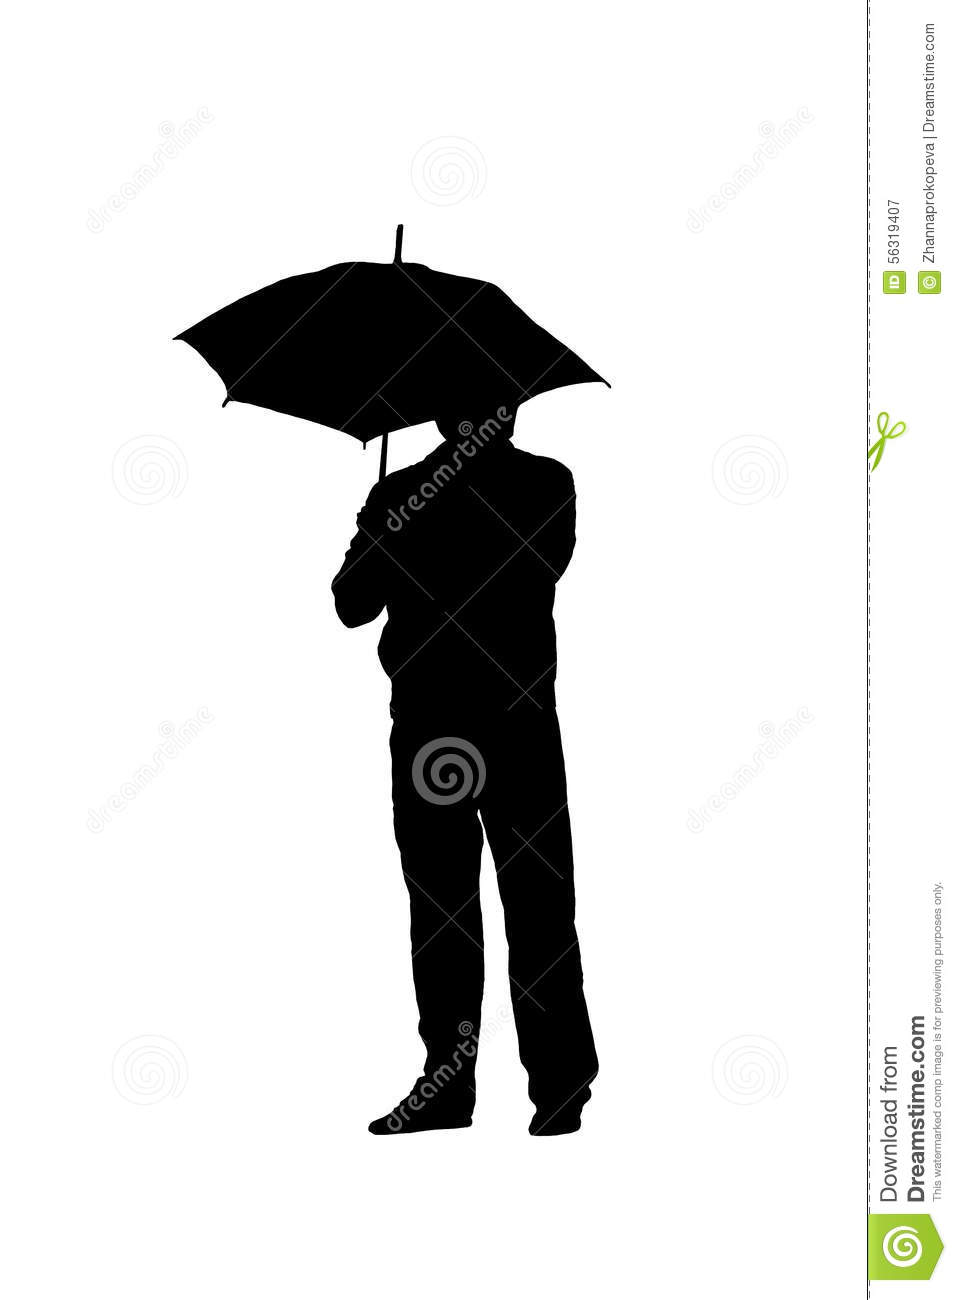 silhouette of a man with an umbrella stock illustration